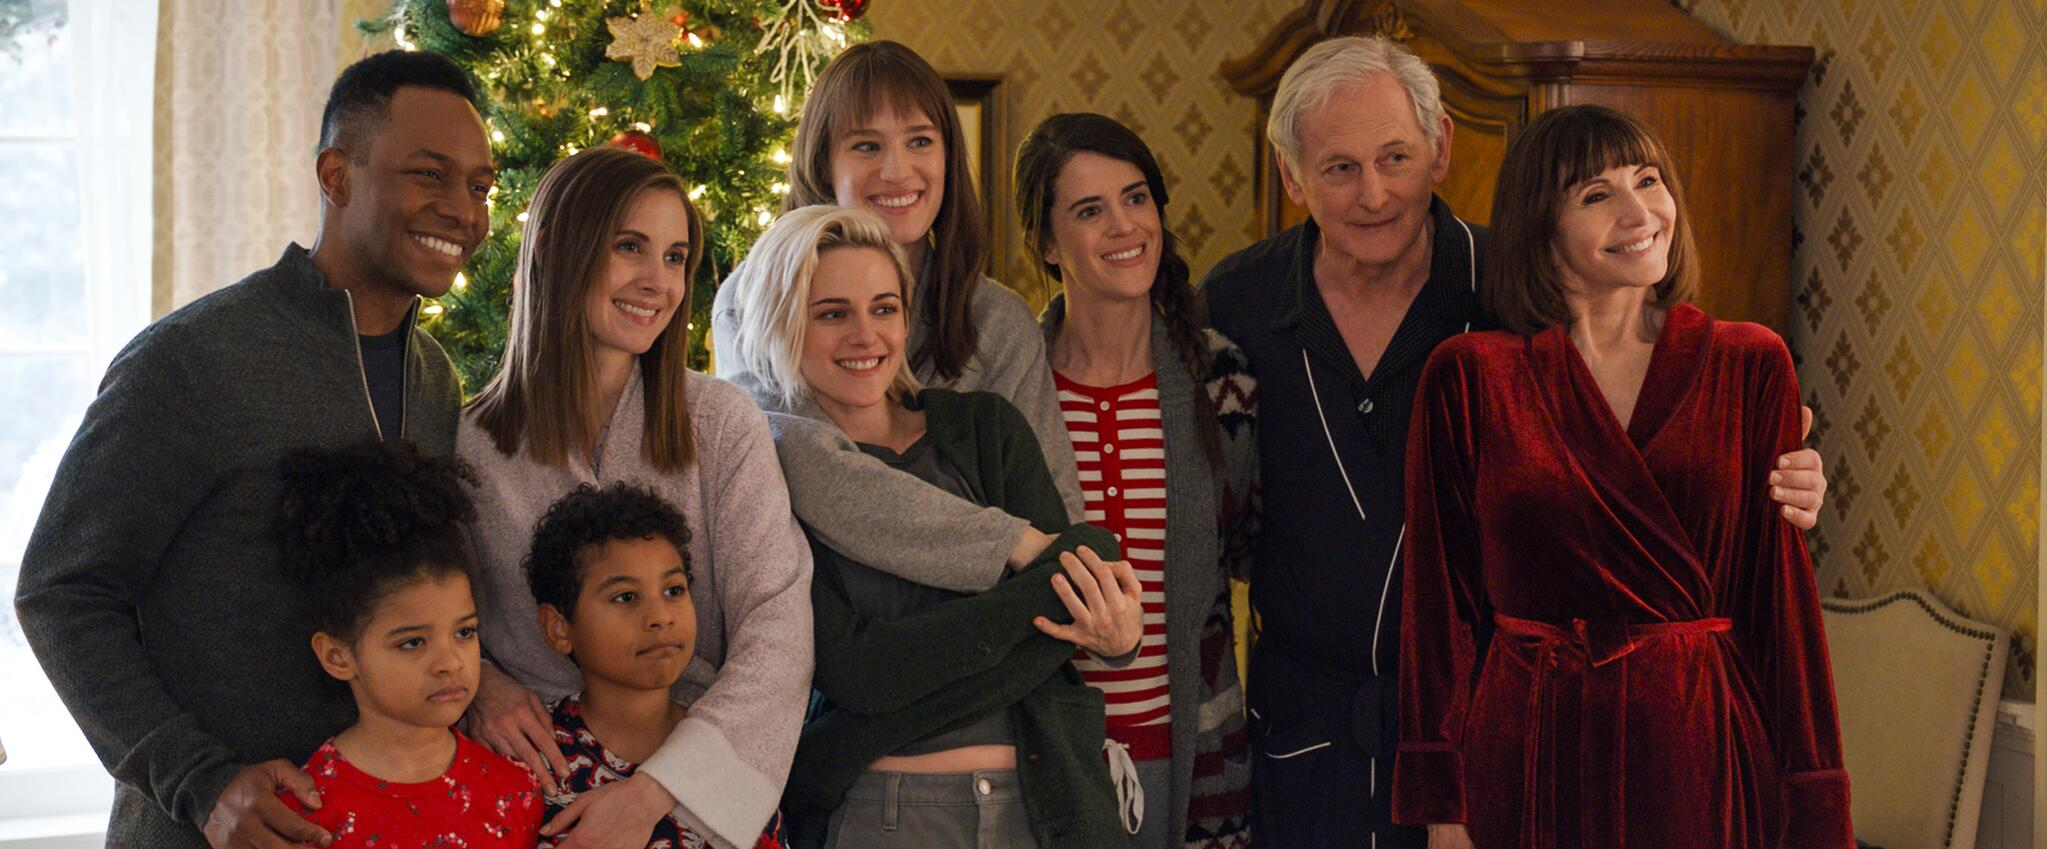 A family photo of the Caldwell family and spouses in 'Happiest Season'